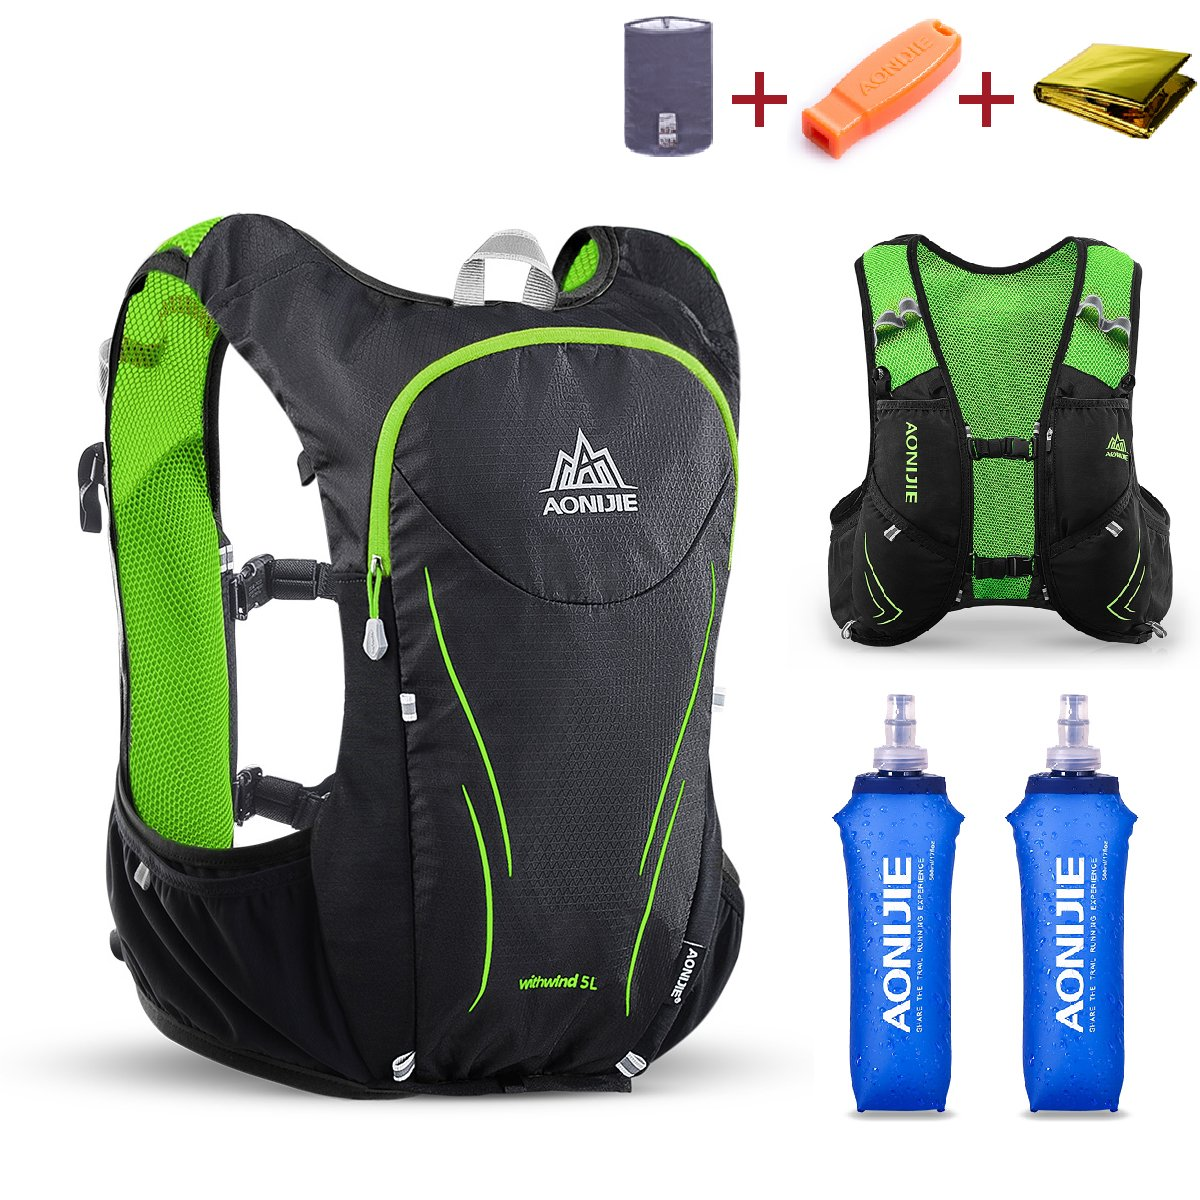 TRIWONDER Hydration Pack Backpack 5L Lightweight Deluxe Marathoner Running Race Hydration Vest (Black & Green - with 2 Soft Water Bottles, M/L - 34.6-39.4in)